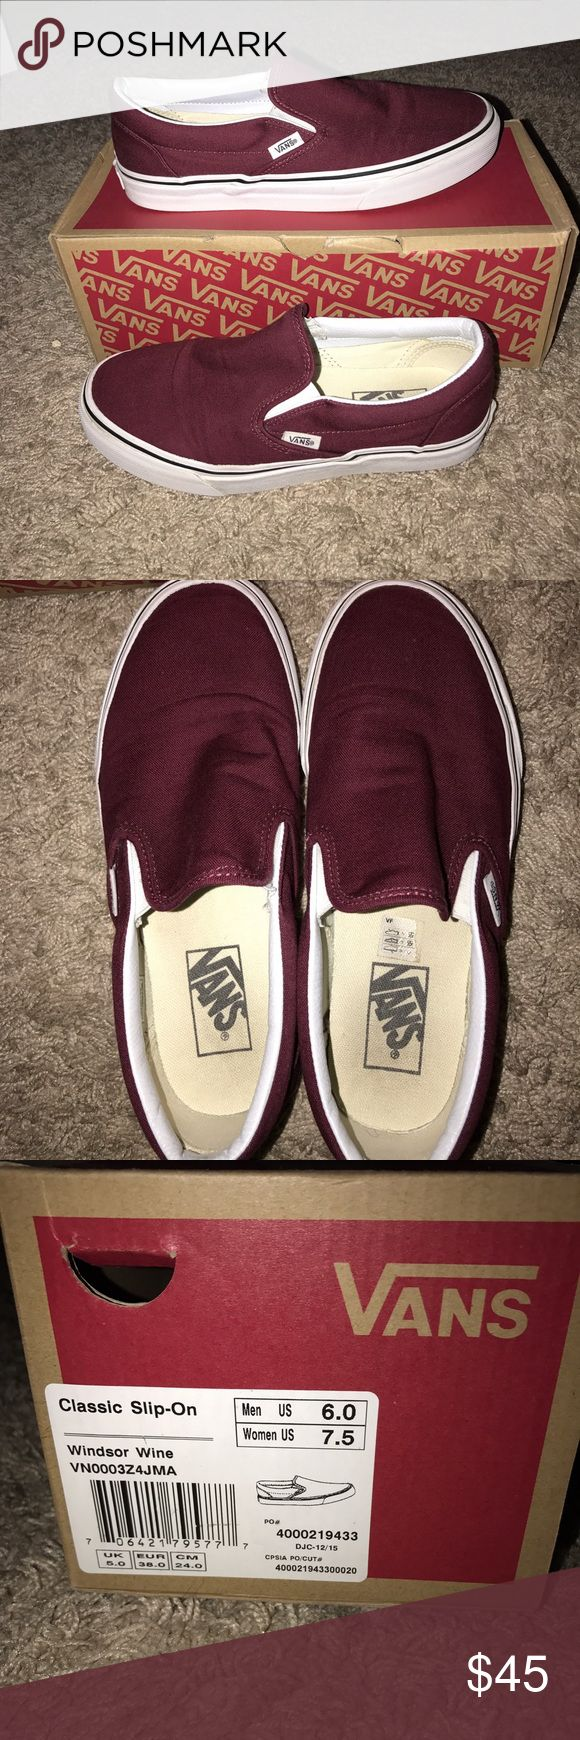 Classic slip on Maroon vans So comfy and in great condition. Only worn a few times. Vans Shoes Sneakers